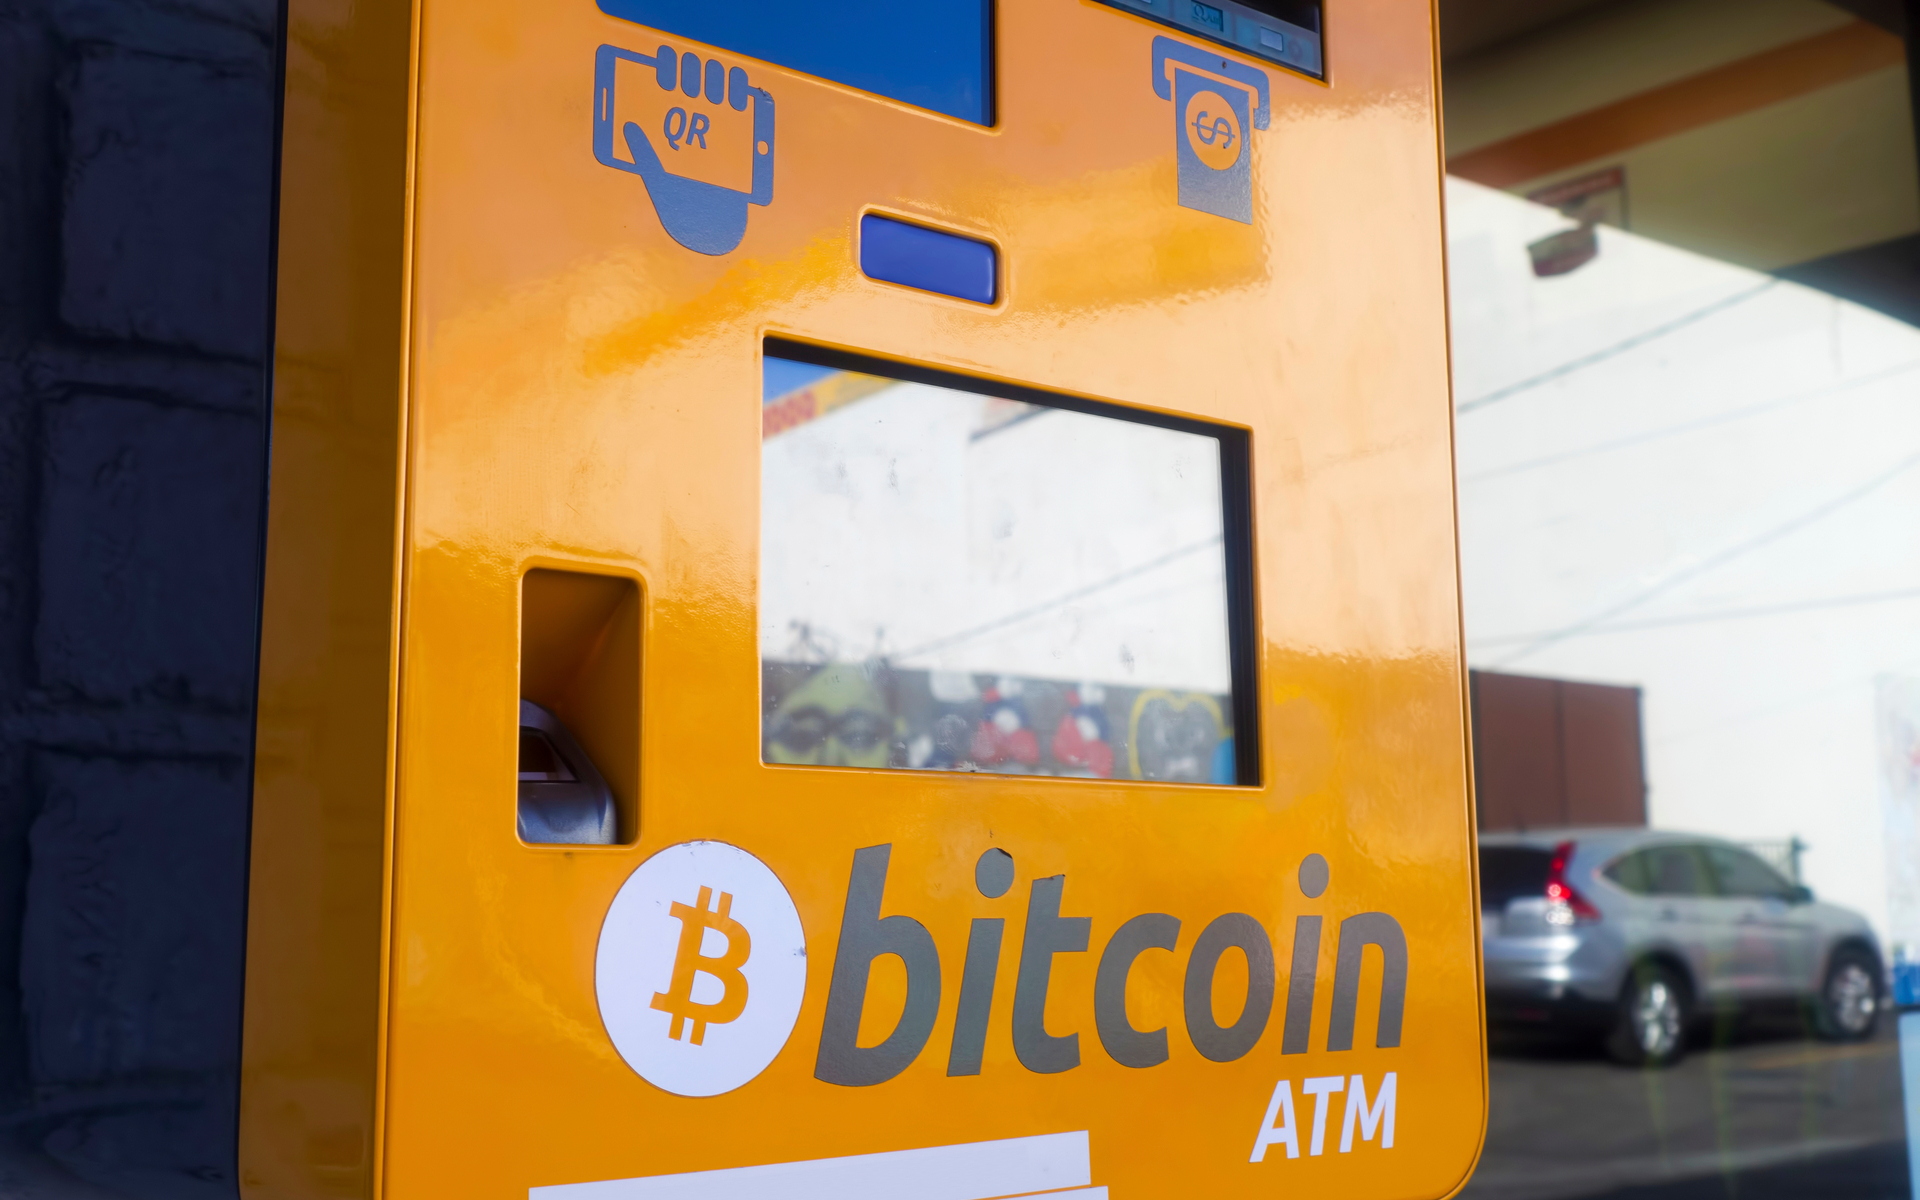 Making ATM Bitcoin Payments via Lightning Network Is Becoming a Reality